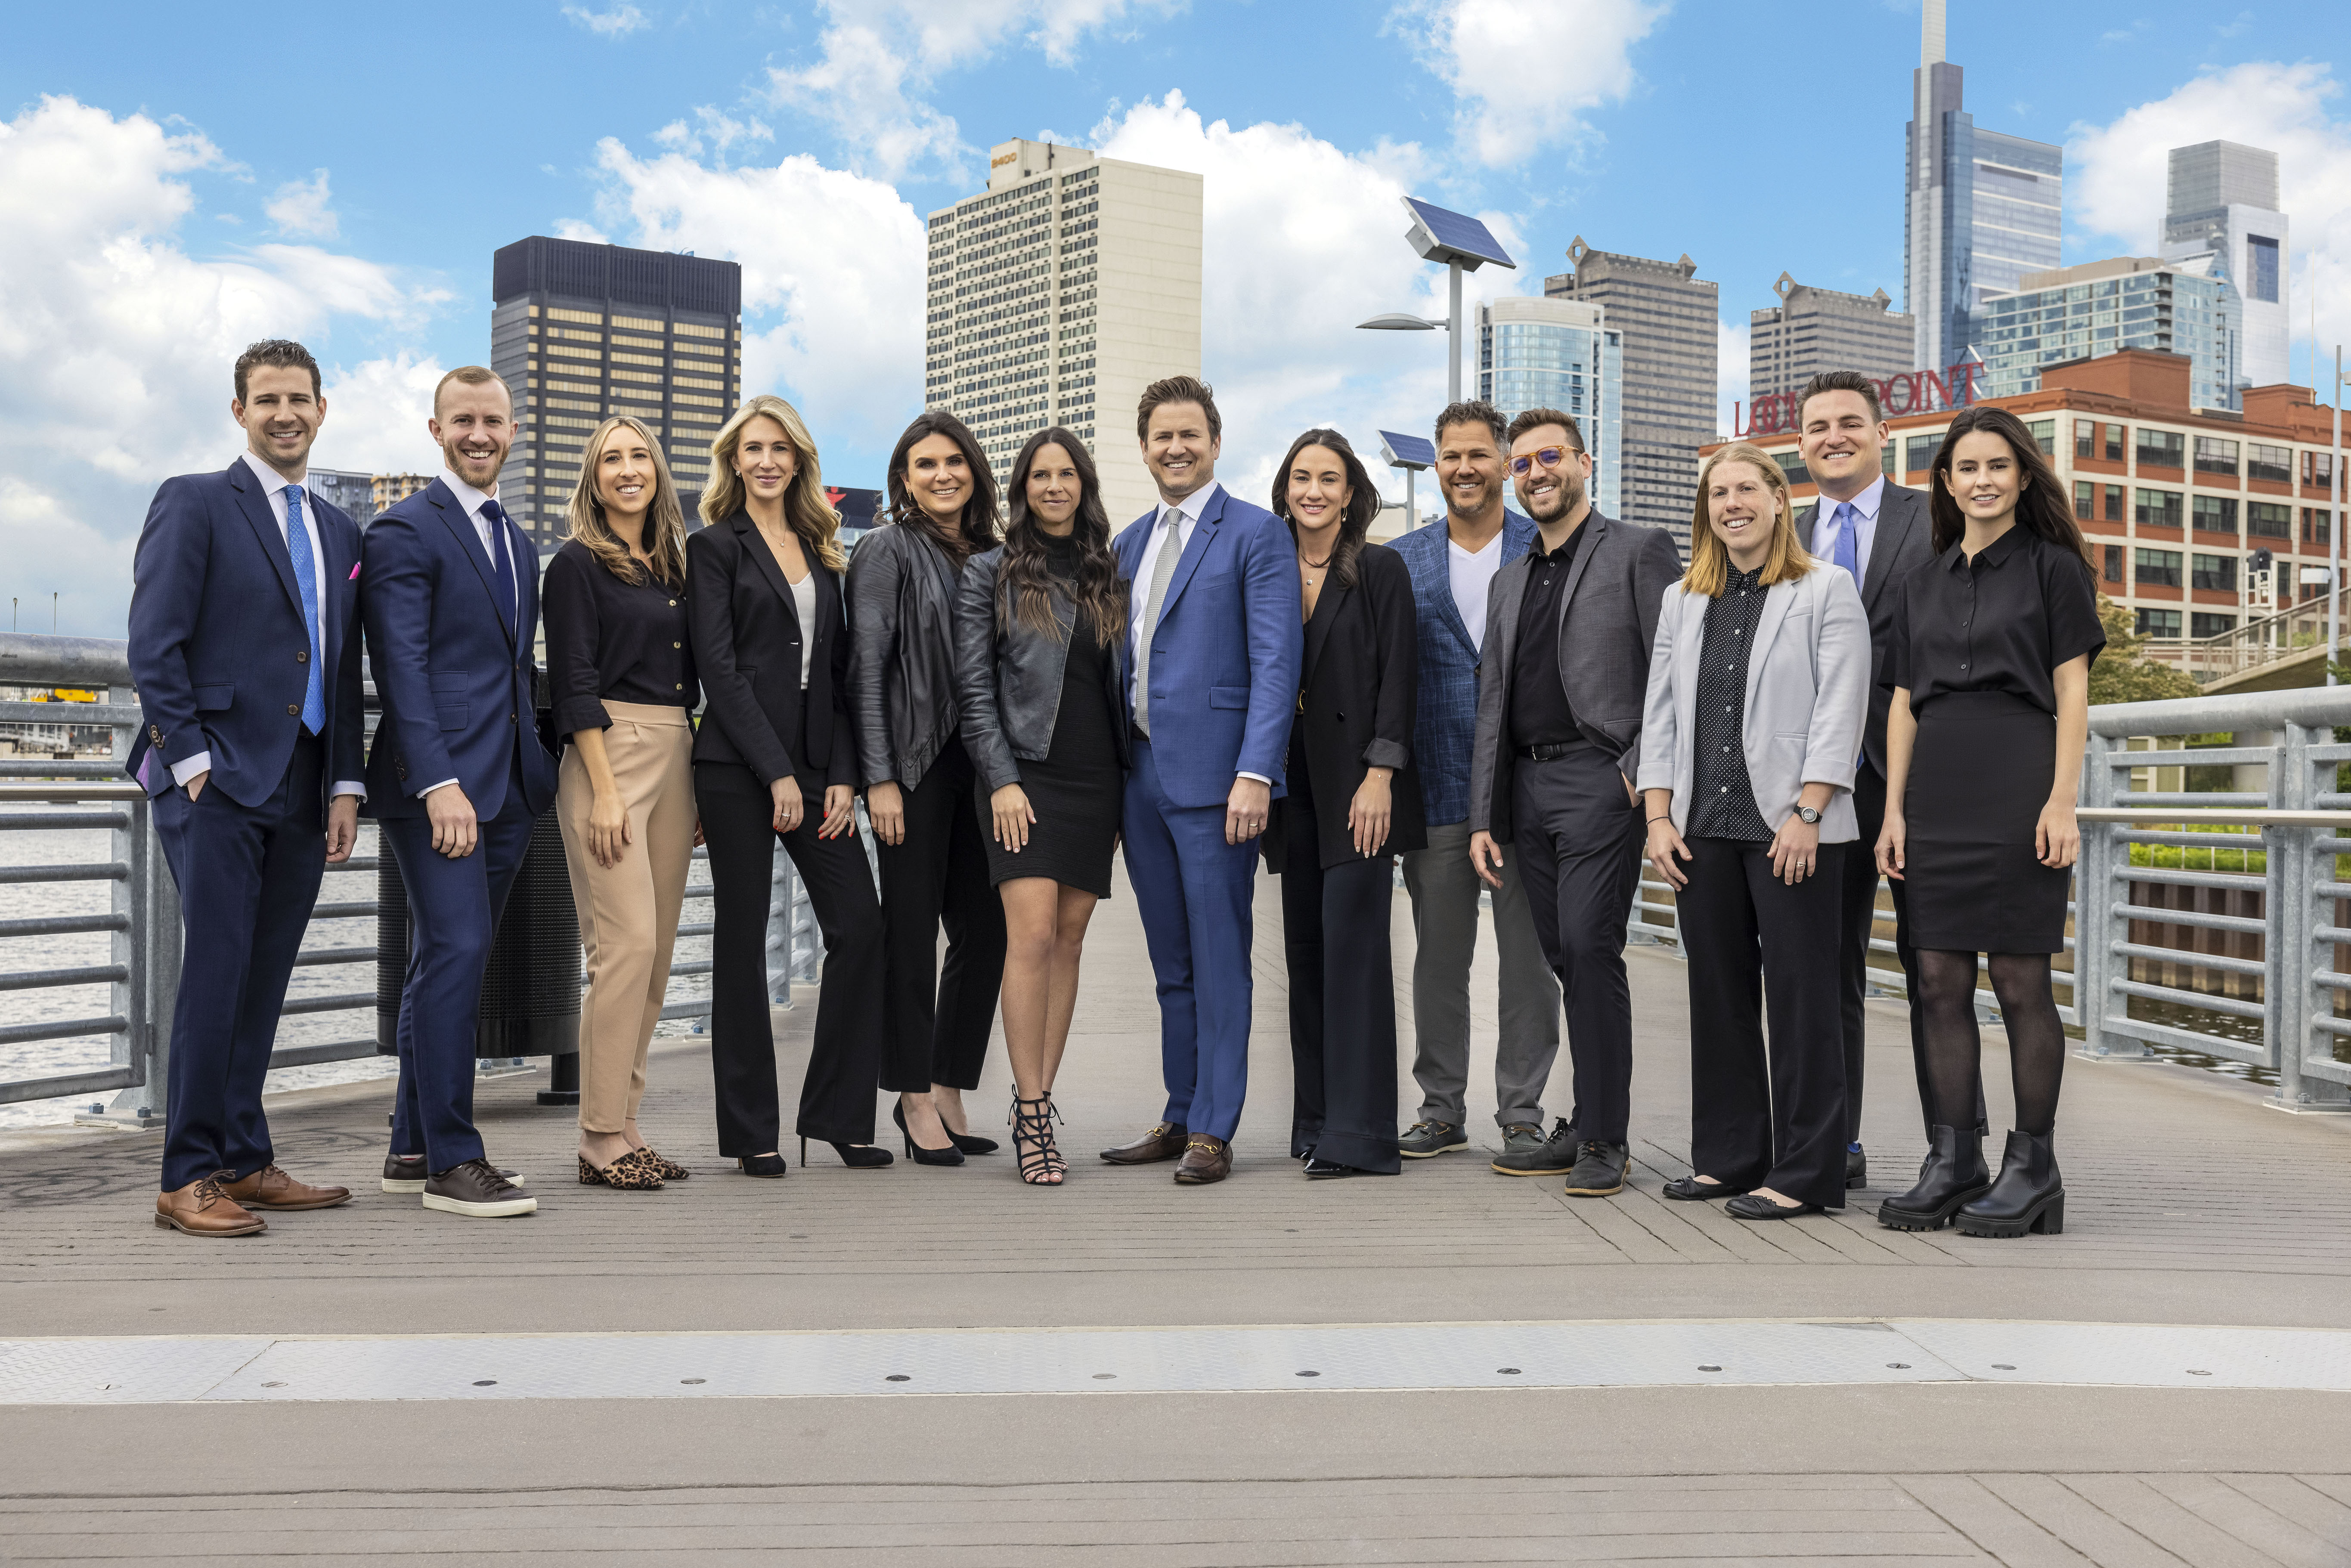 The Rosenthal Group - Realtors in Philadelphia and The Main Line